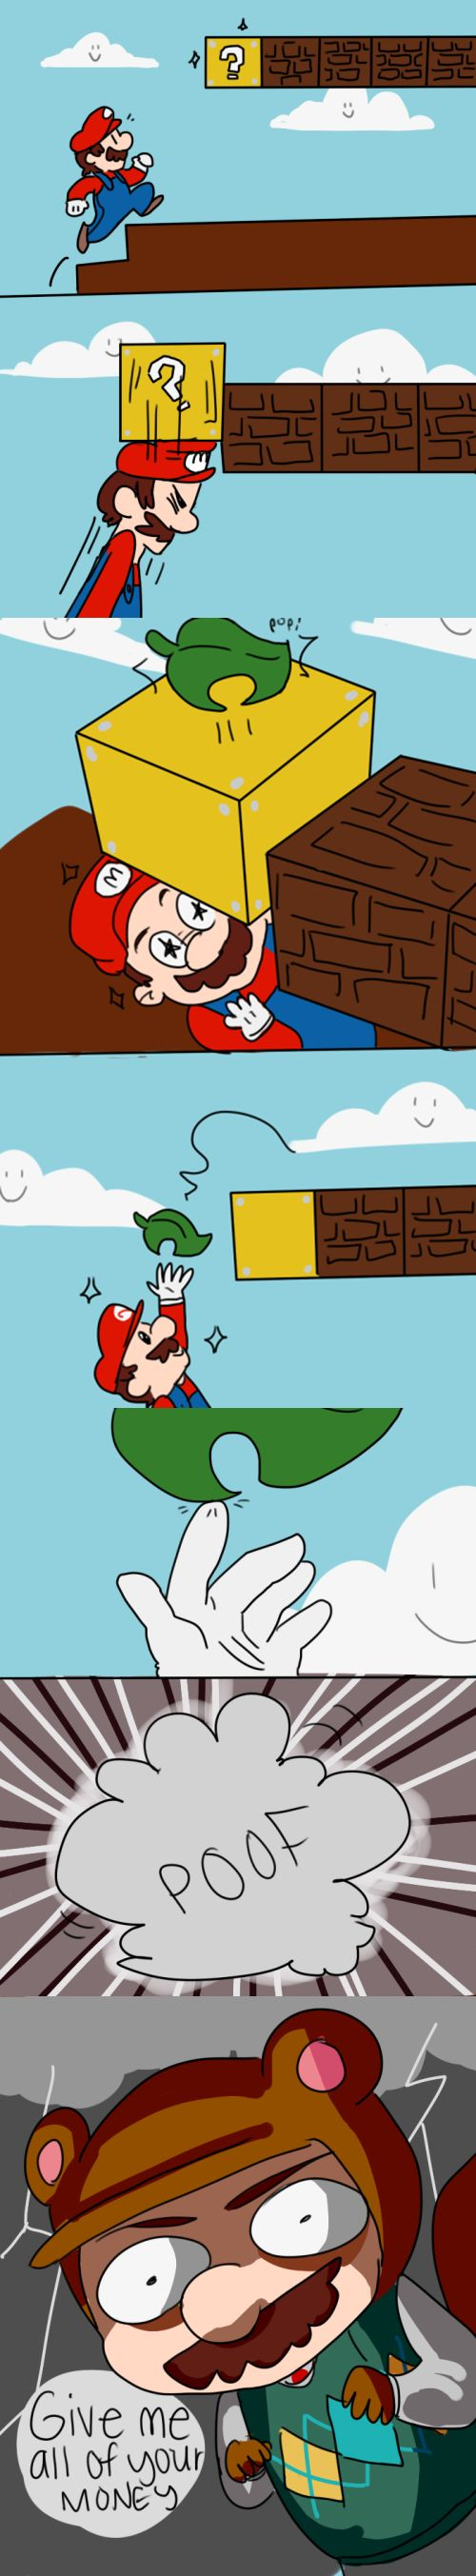 Animal Crossing & Mario.---Lol! Mario actually hits the bricks with his fist though, not his head.